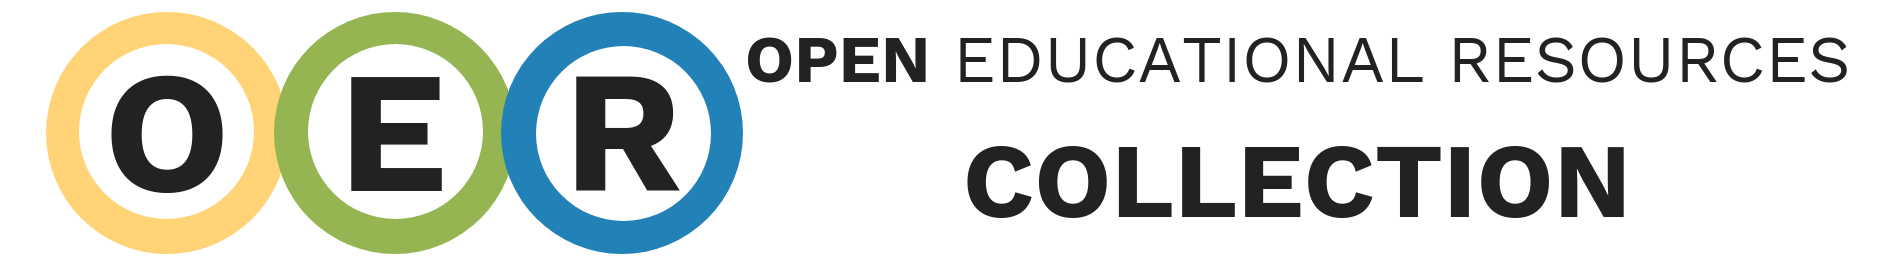 Open Education Resources Collection